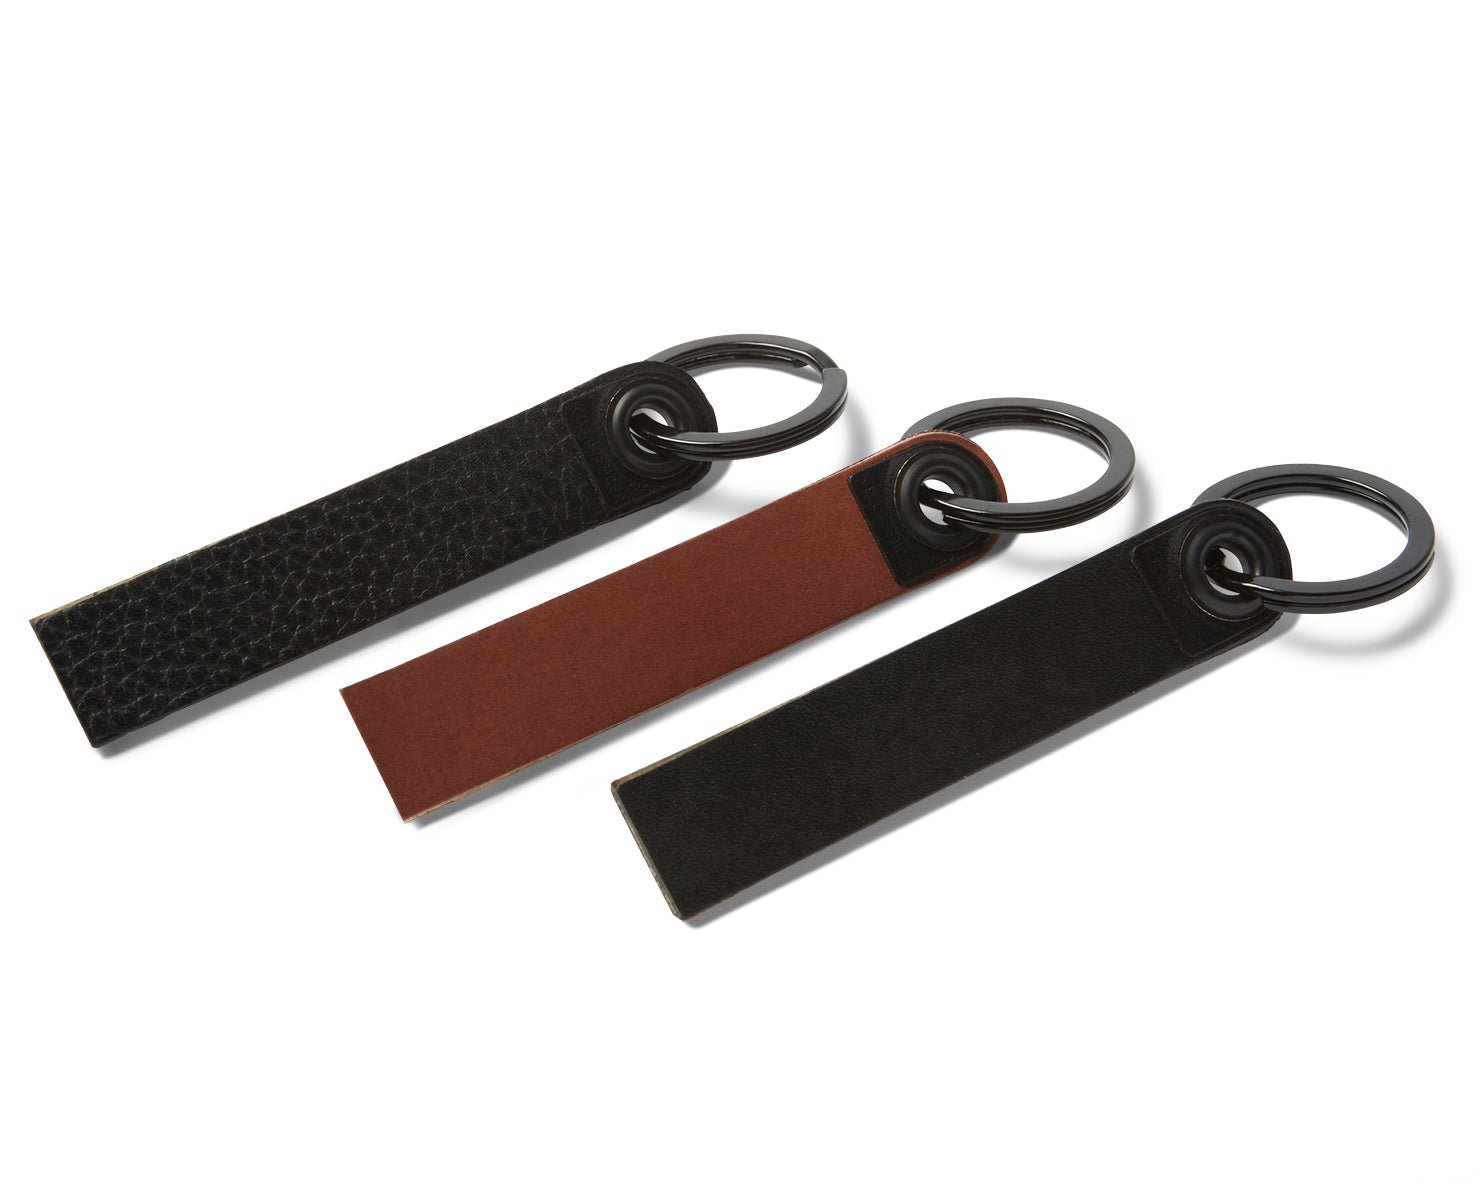 MULTI-TOOL KEYCHAIN | KILLSPENCER® - Black Bullhide Leather